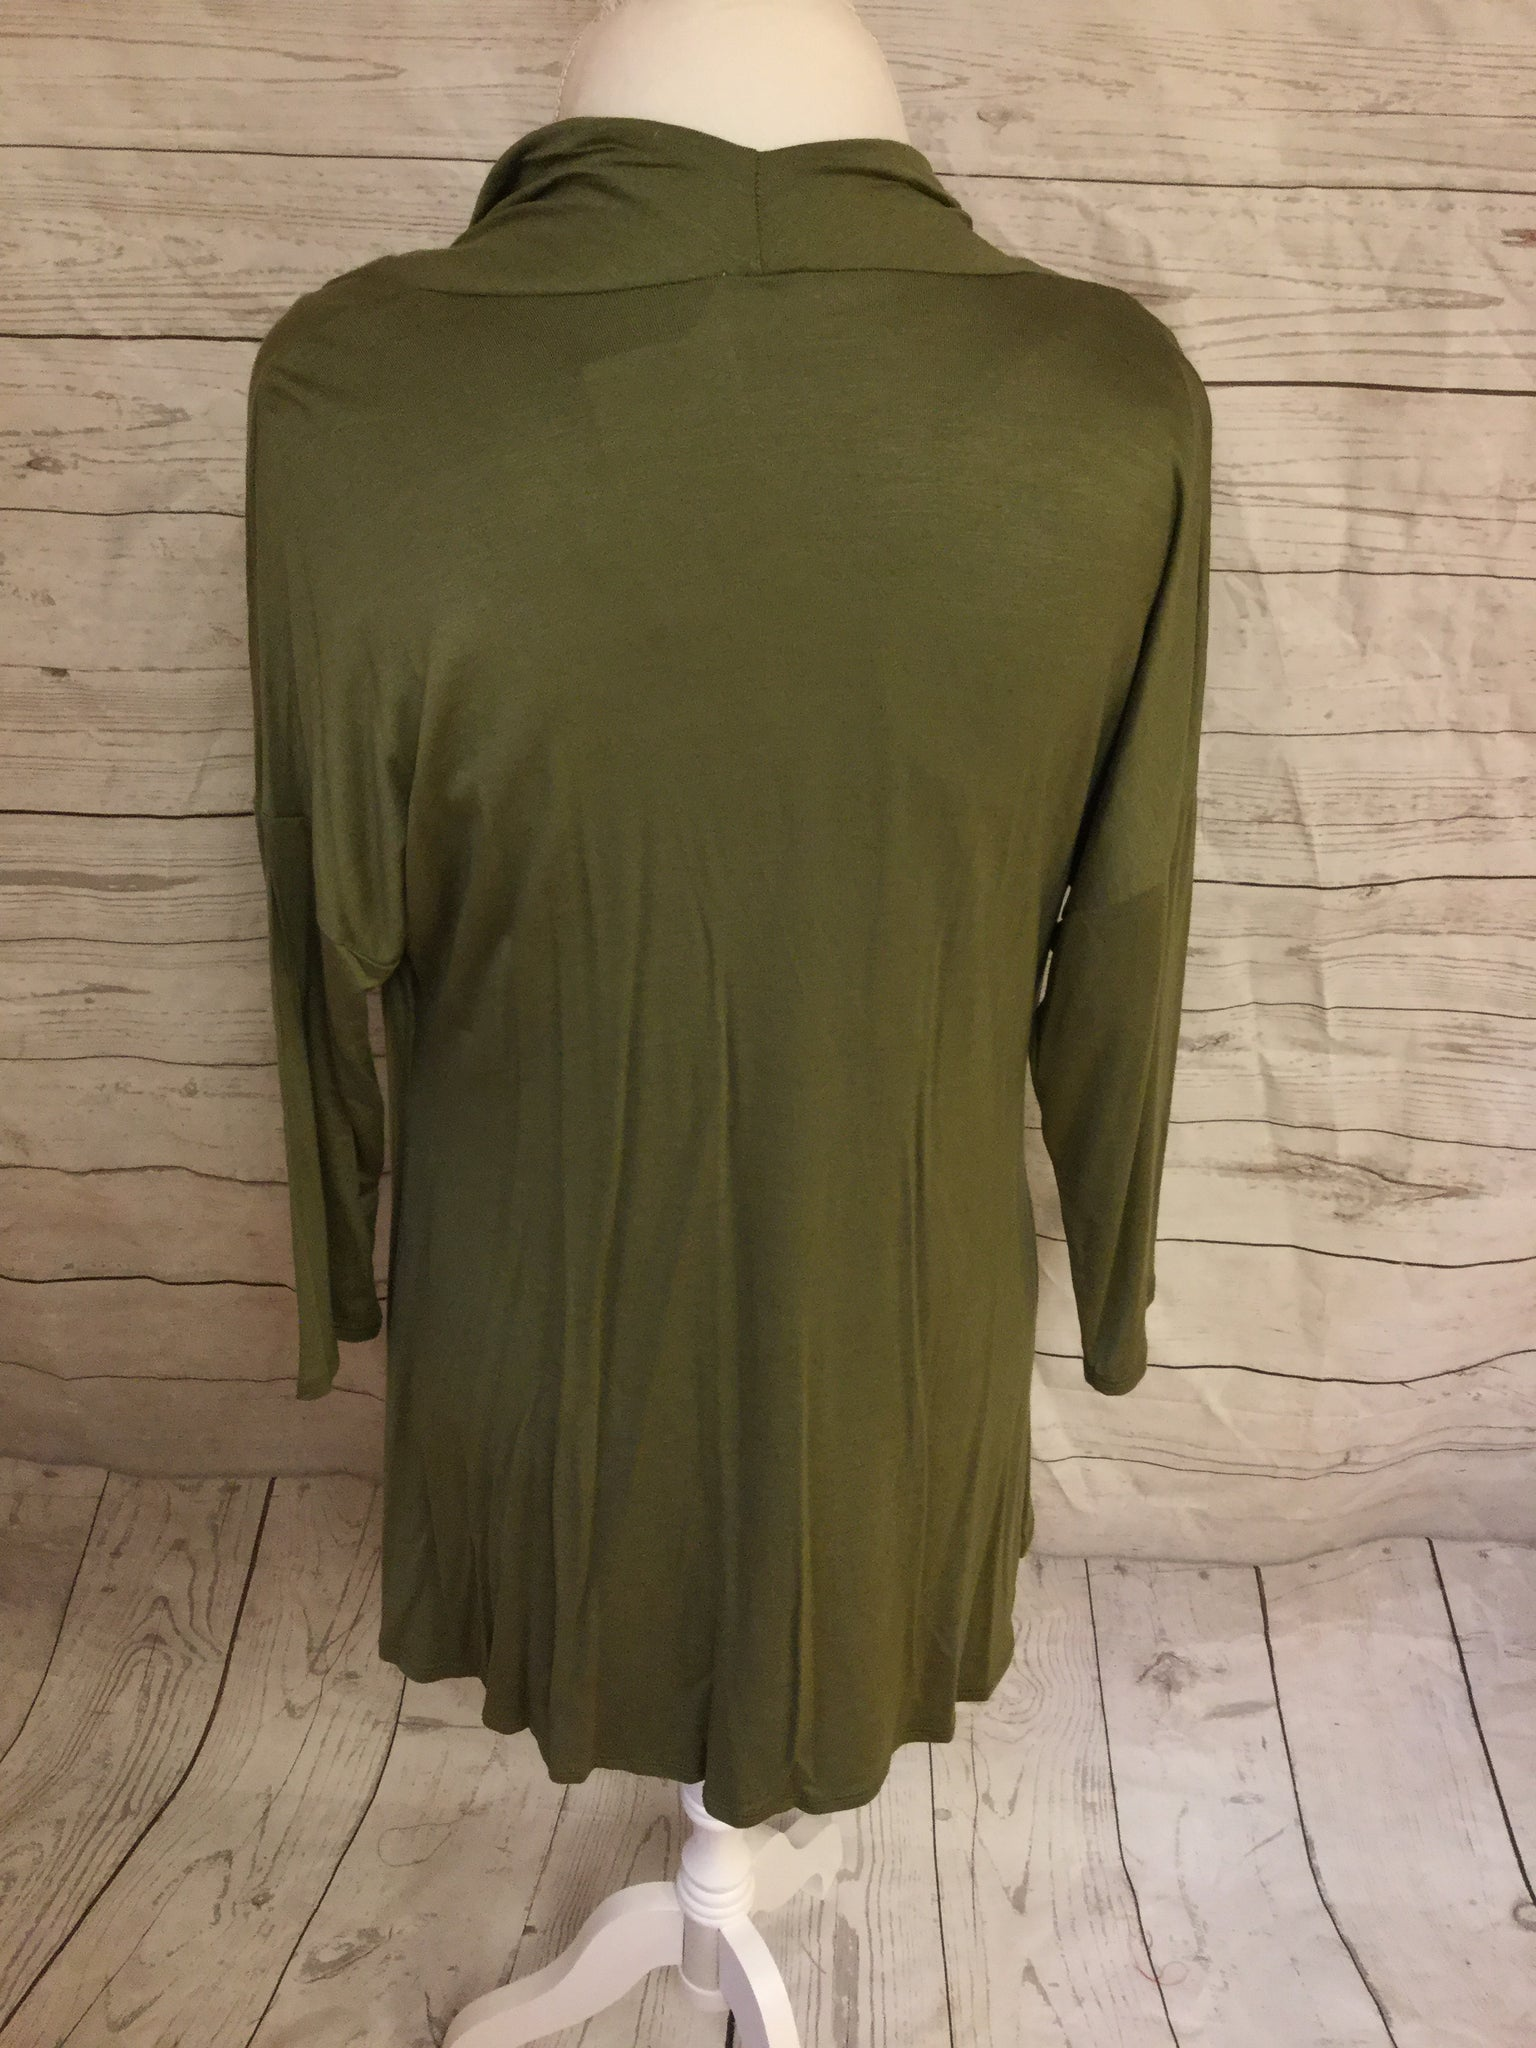 Waterfall Top with 3/4 Length Sleeve Light Olive Top